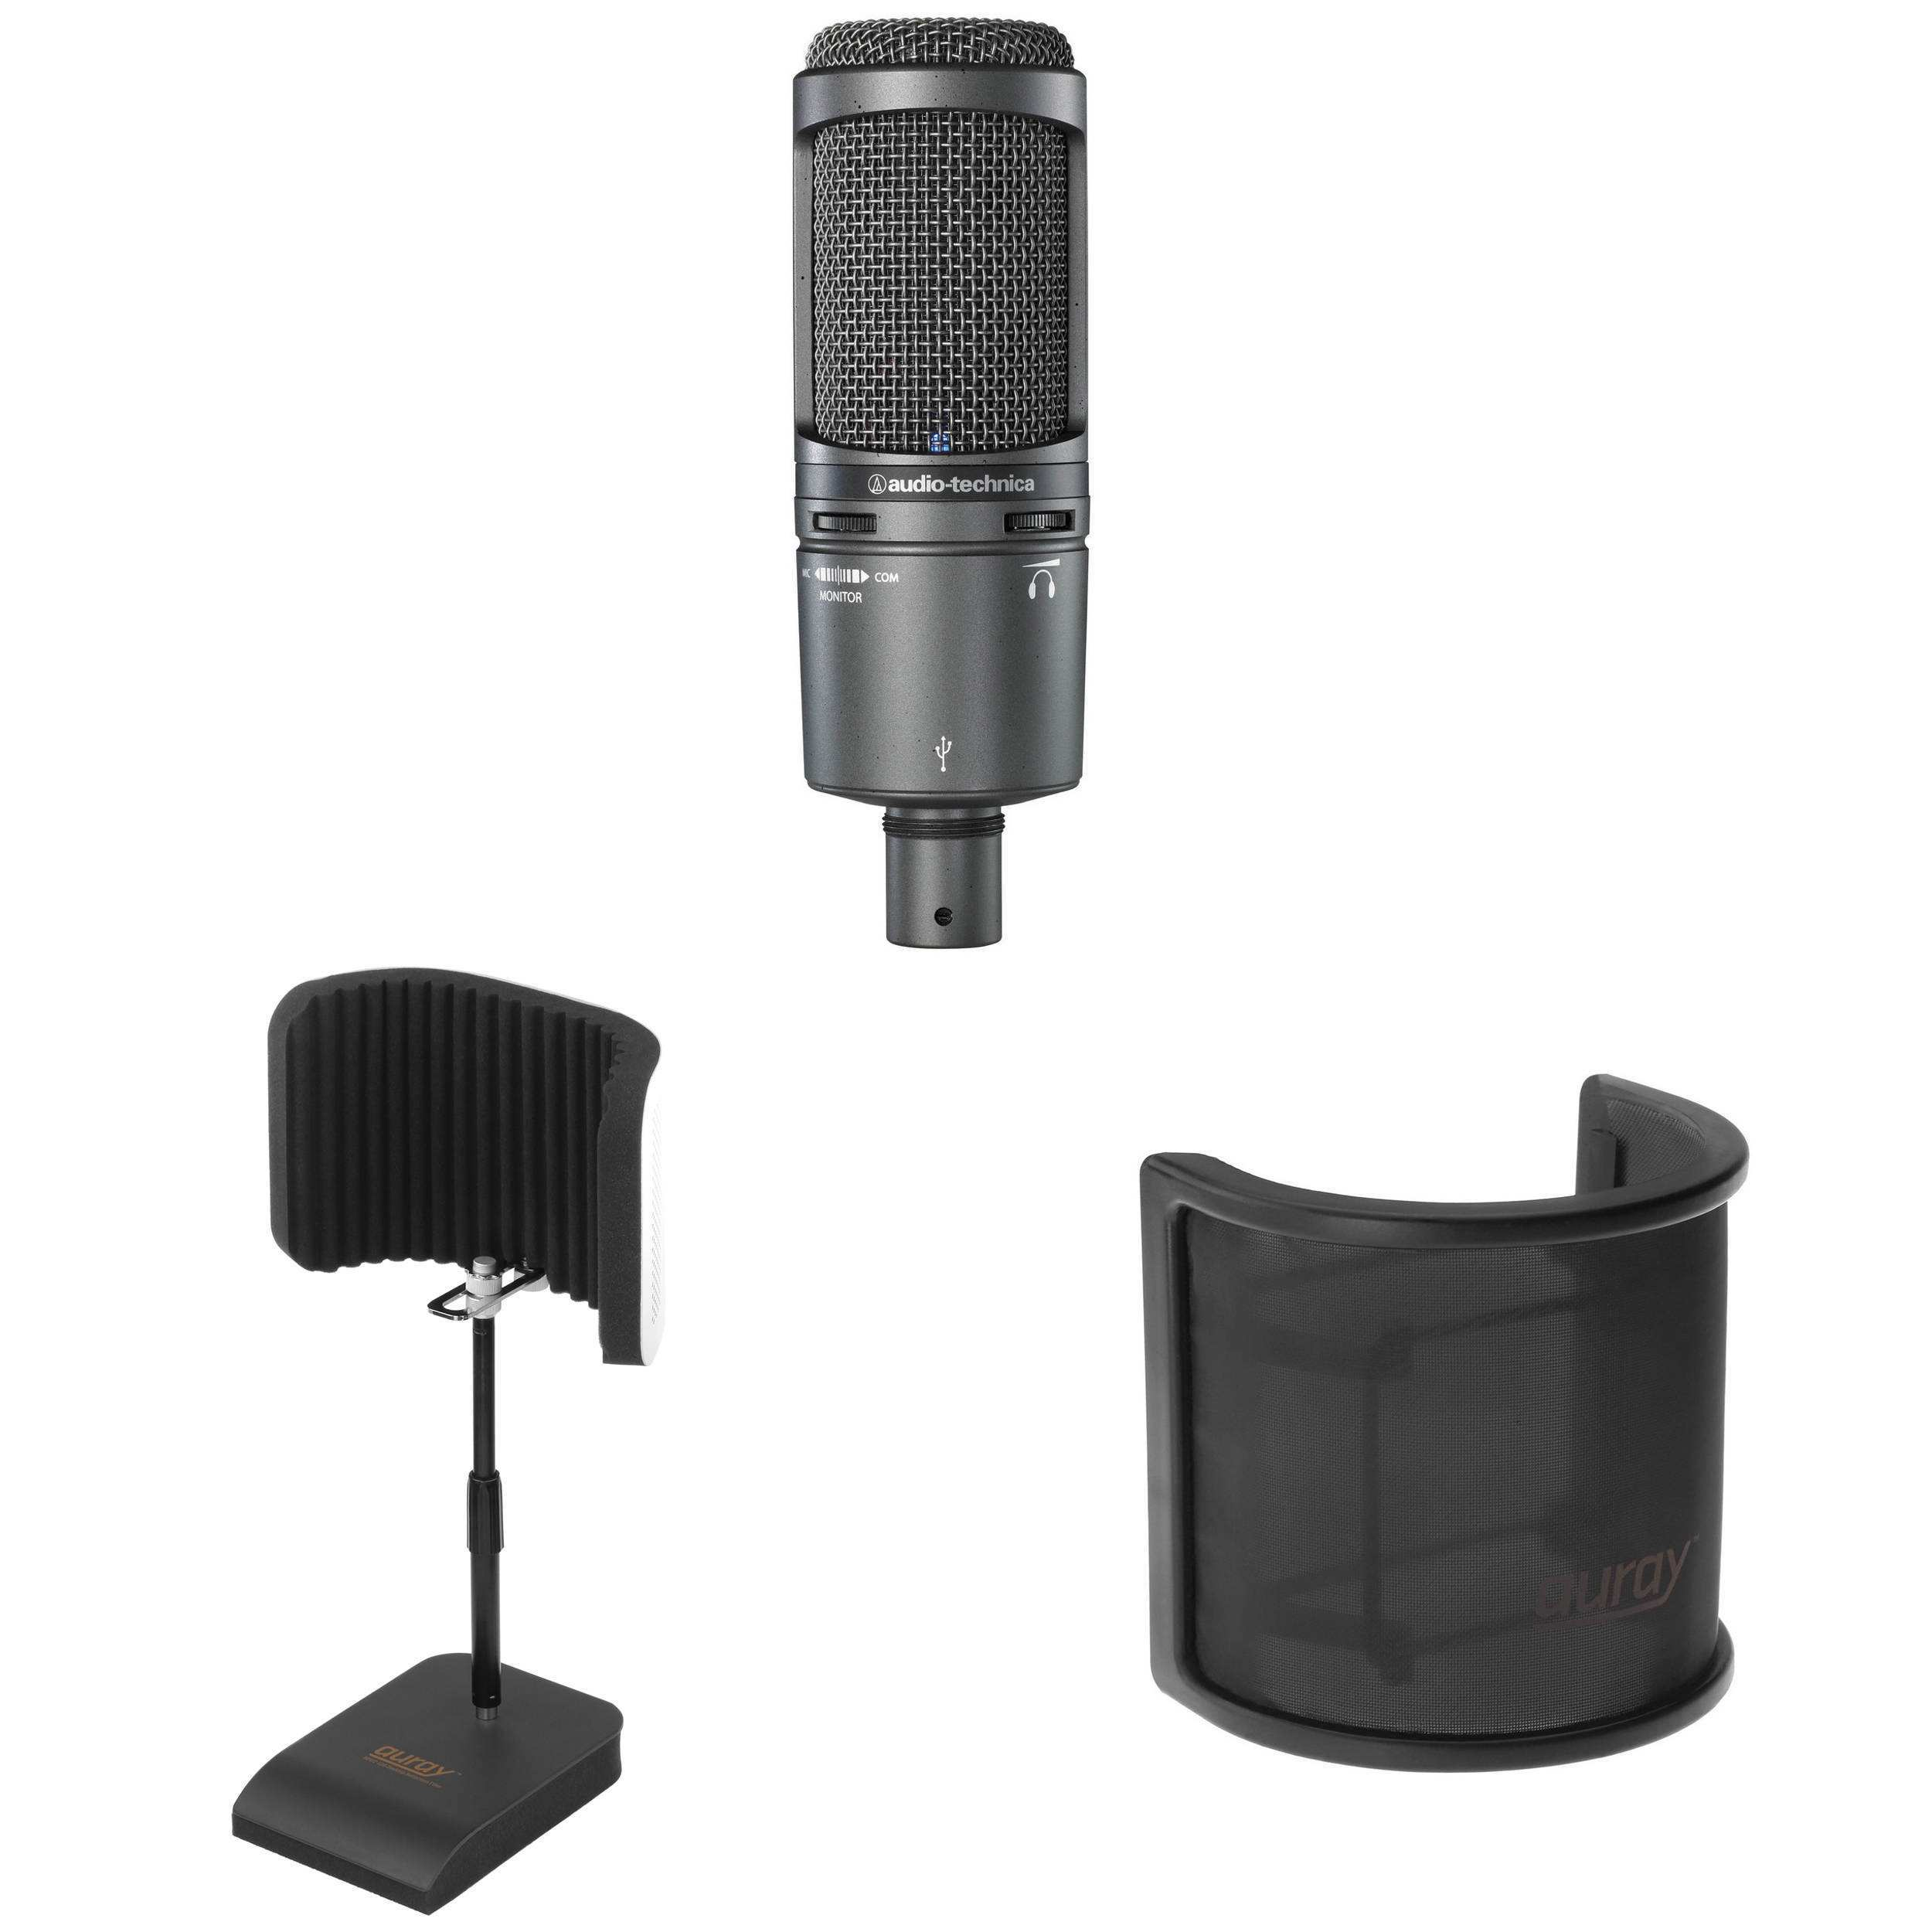 59 All New Audio Technica At2020 Price